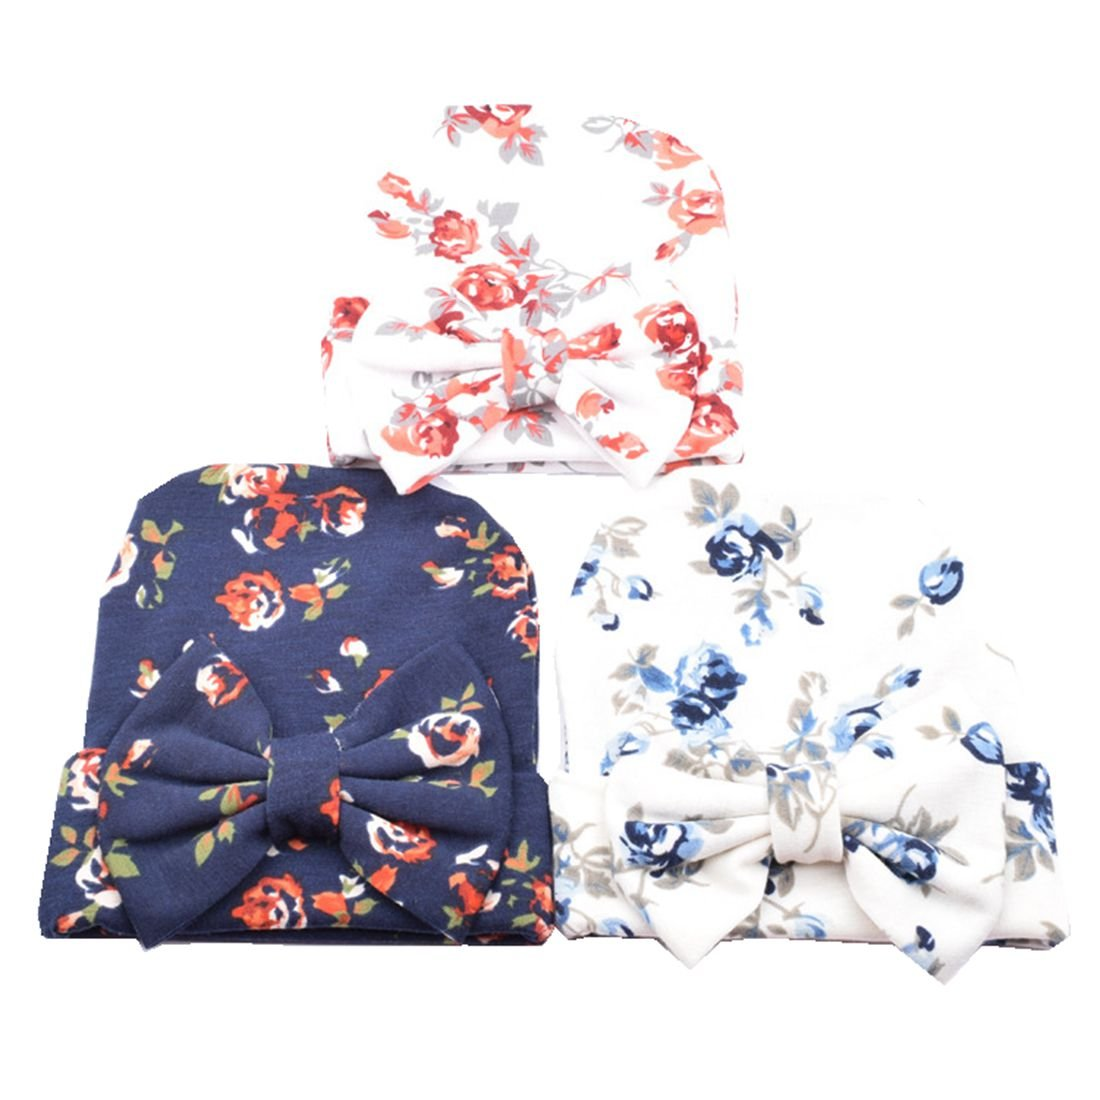 Blue Newborn Hospital Hat Cap with Big Bow Comfort For Infant Baby Girls 3 Pcs